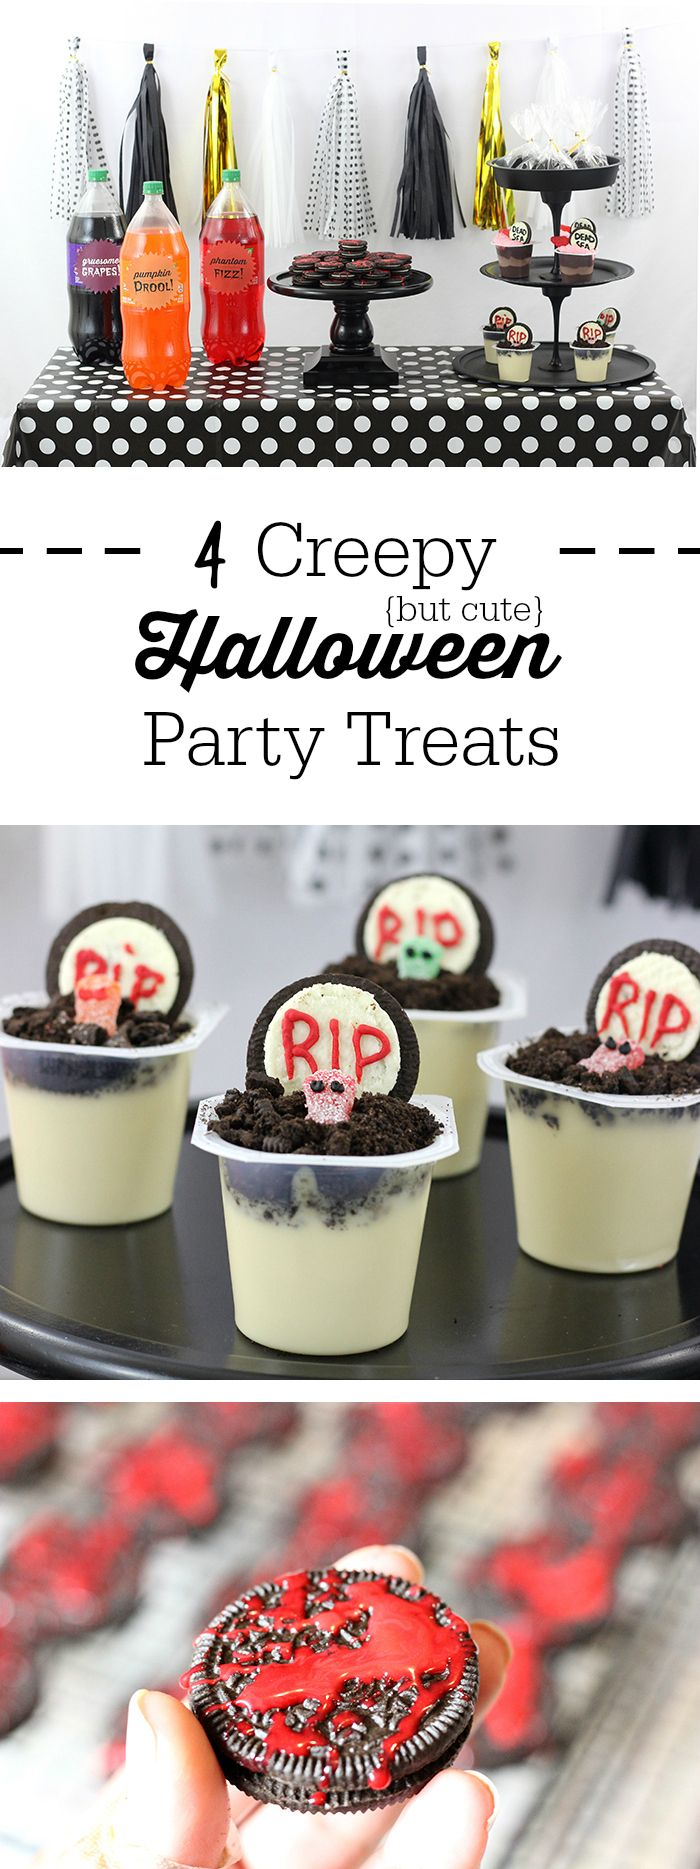 Best 25+ Creepy halloween party ideas on Pinterest | Creepy ...